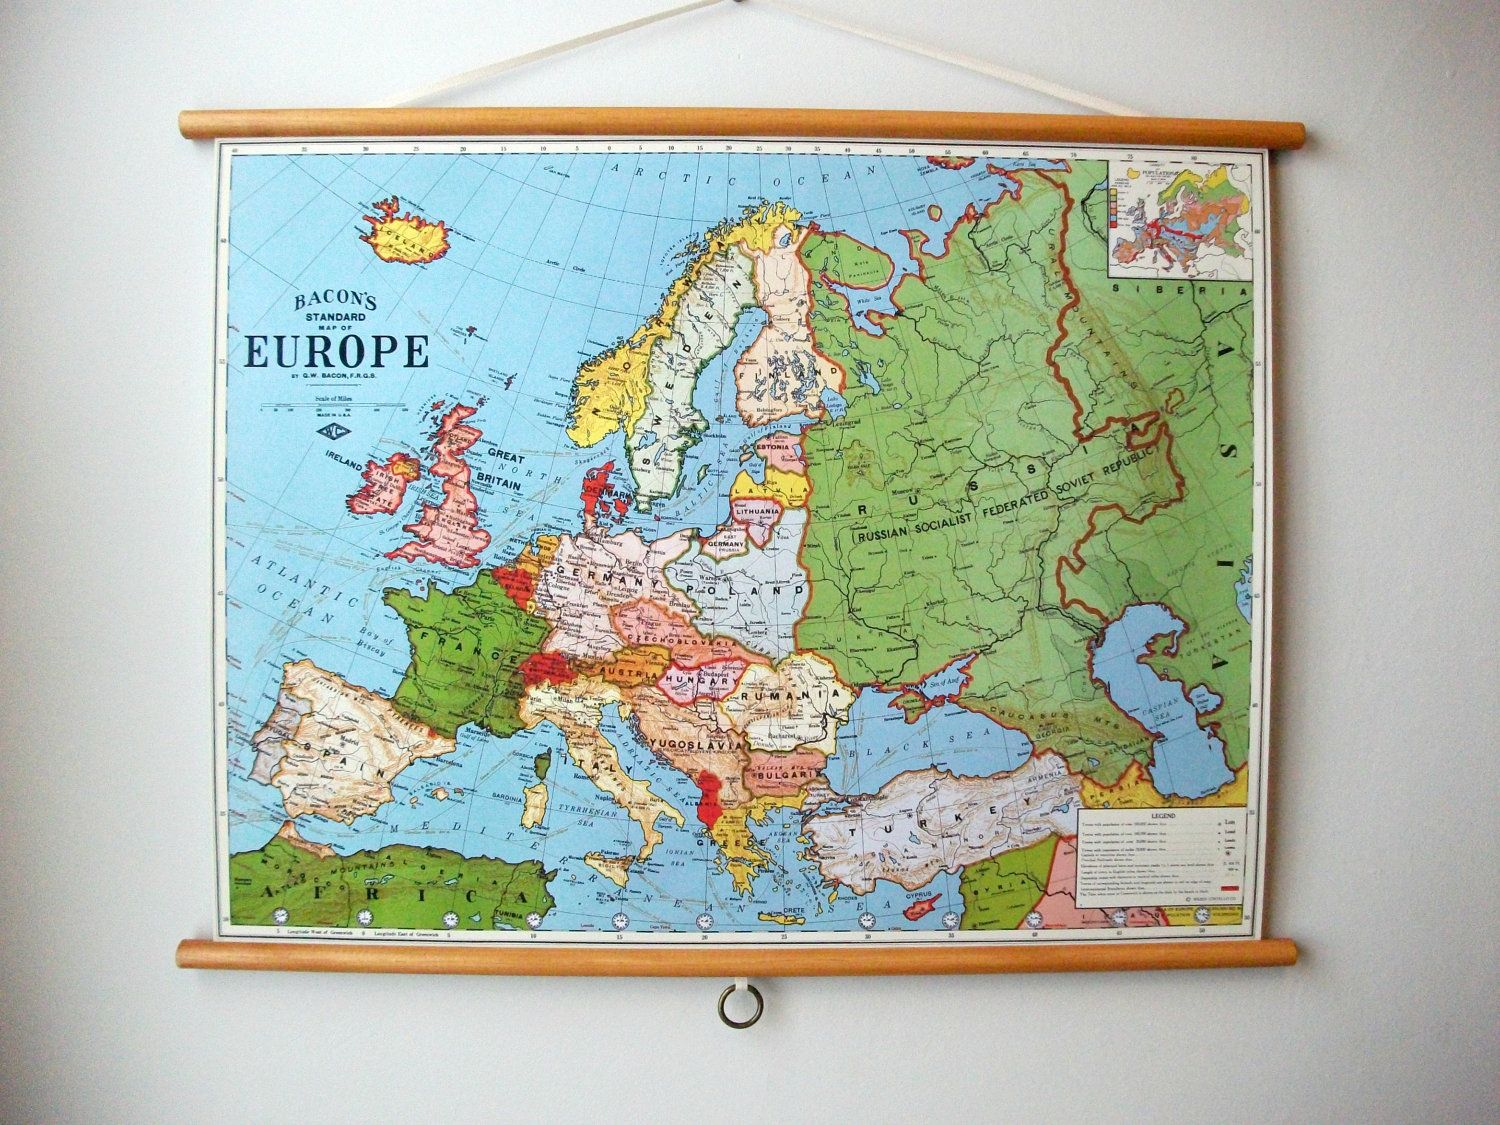 World map 1897 vintage pull down school map chart reproduction world map 1897 vintage pull down school map chart reproduction canvas fabric print wood poster hanger with brass hardware wall hanging gumiabroncs Choice Image